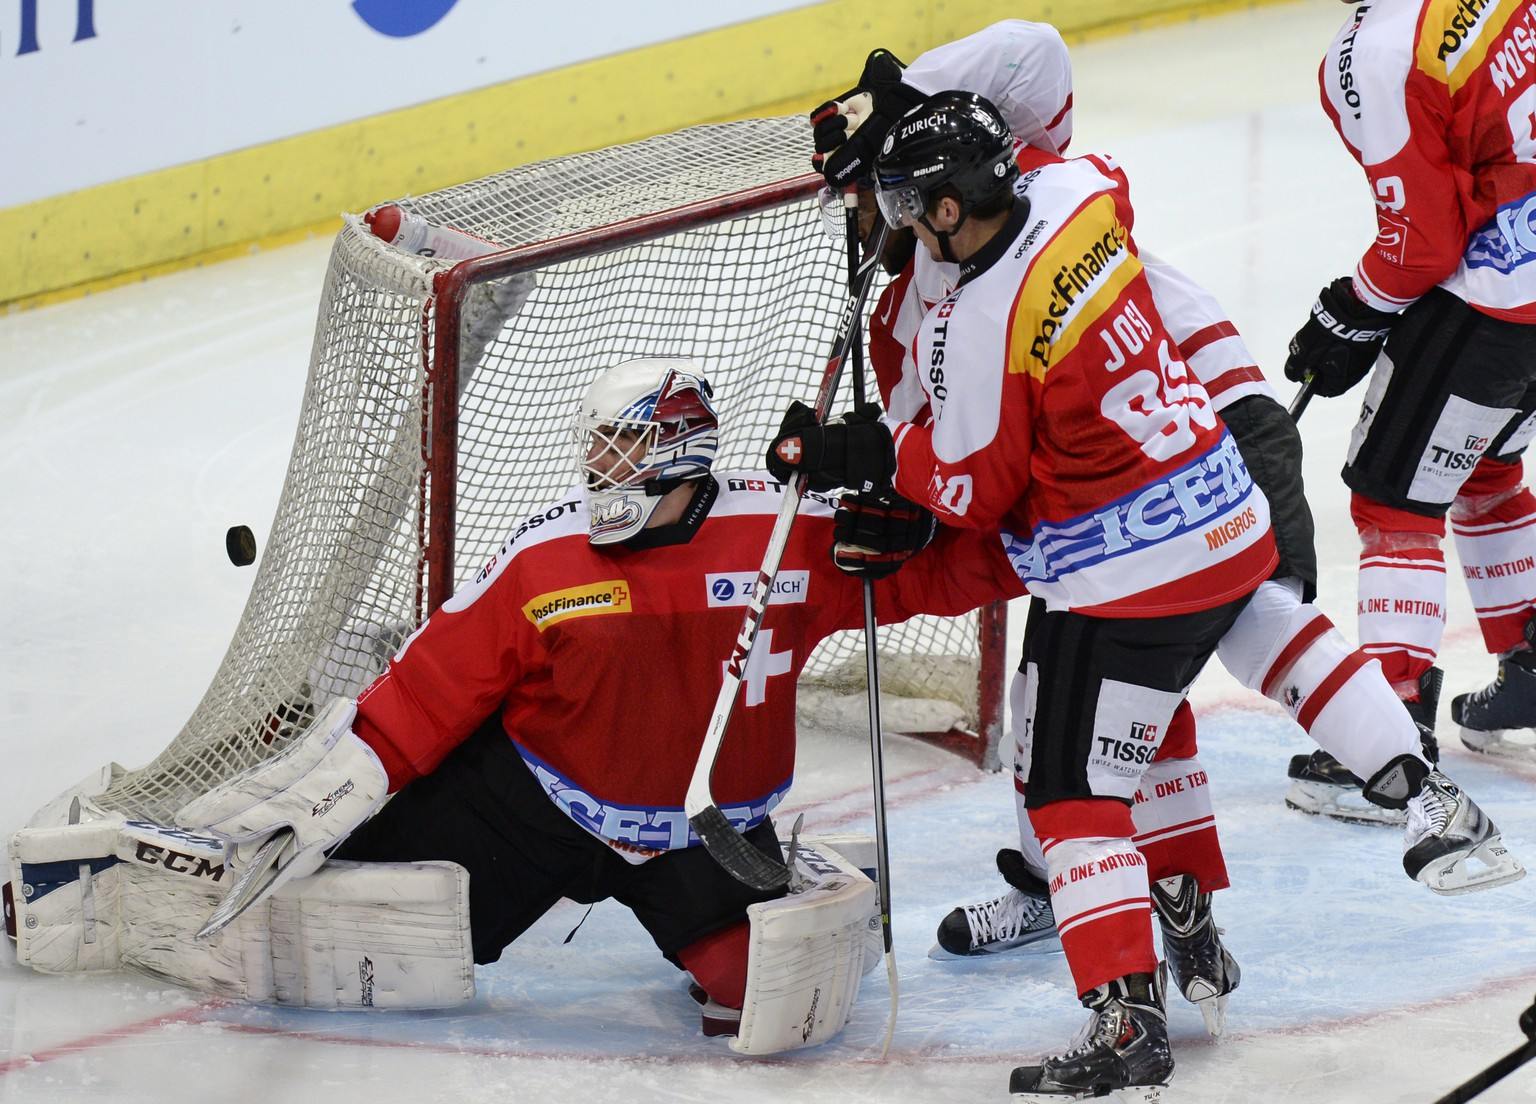 Switzerland's goalkeeper Reto Berra, left, and Roman Josi, right, fight for the puck with Canada's Joel Ward, center, during a friendly ice hockey match Switzerland versus Canada, on Tuesday, May 6, 2014, in the Hallenstadion in Zuerich, Switzerland. Both teams prepare for the upcoming 2014 Ice hockey World Championships in Belorussia. (KEYSTONE/Steffen Schmidt)